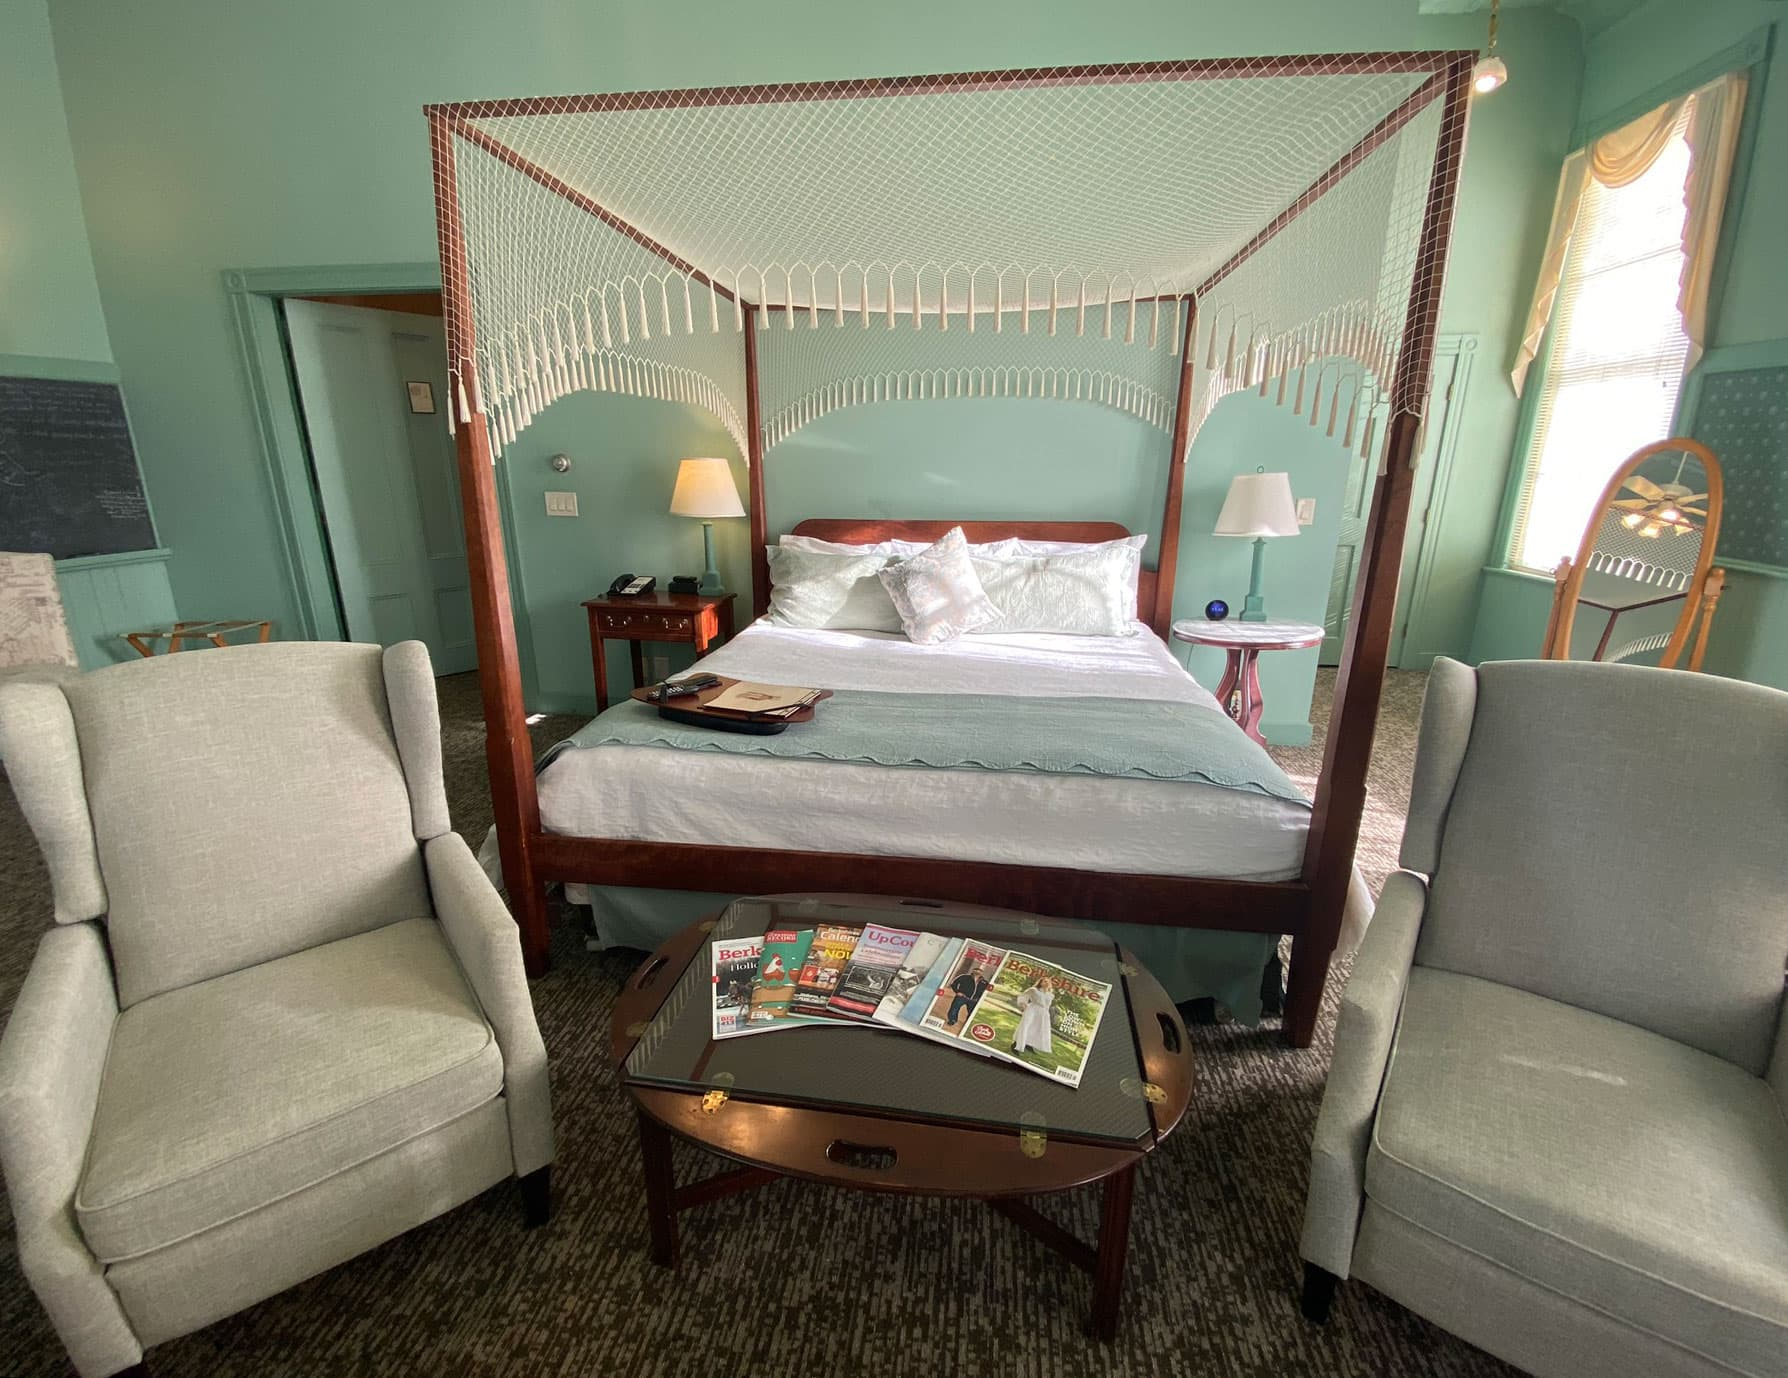 View of magazines and sitting area at the foot of ornate bed - Lenox Inn